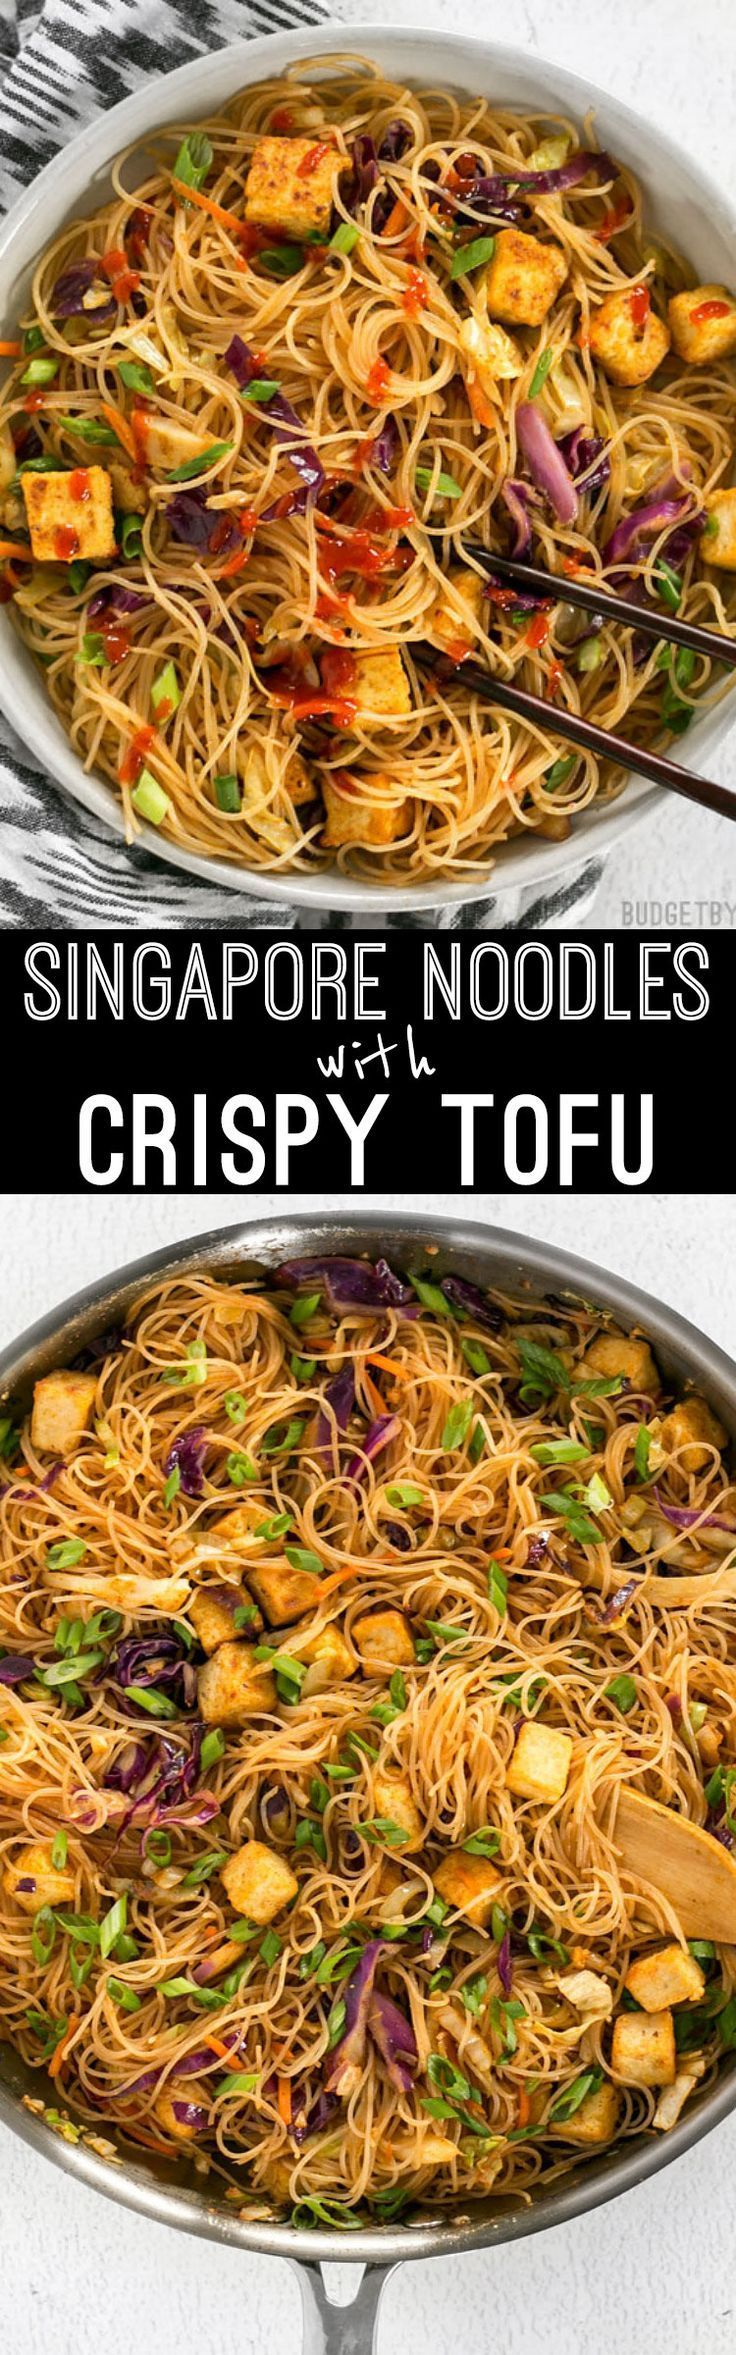 These Singapore Noodles with Crispy Tofu have a bold flavor and vibrant colors thanks to shredded vegetables and a bright curry sauce. @budgetbytes: